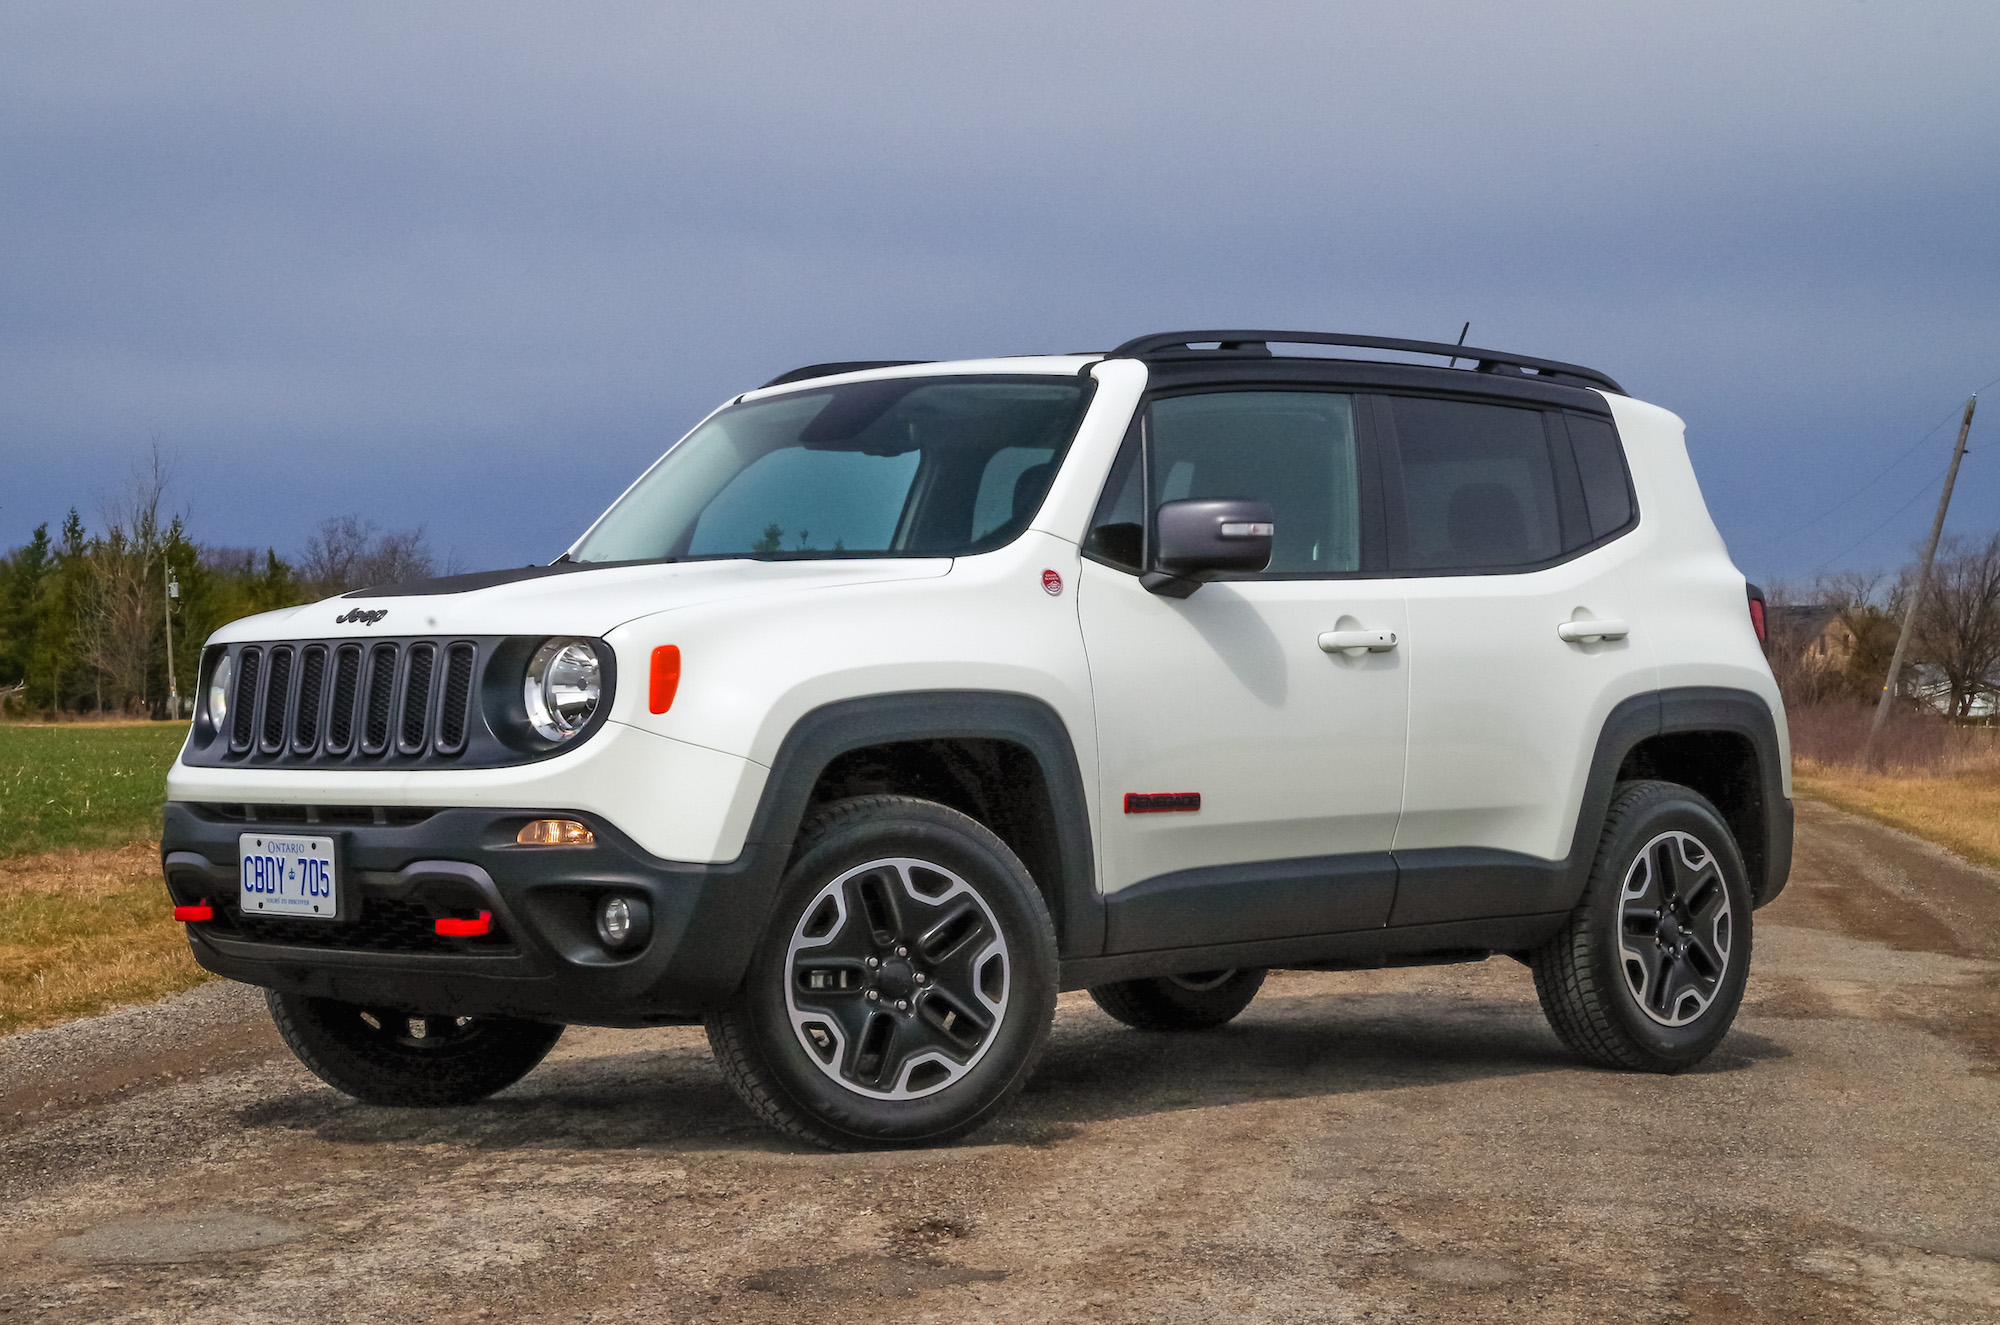 Jeep Renegade Trailhawk Tuning >> Jeep Renegade Trailhawk | www.pixshark.com - Images Galleries With A Bite!